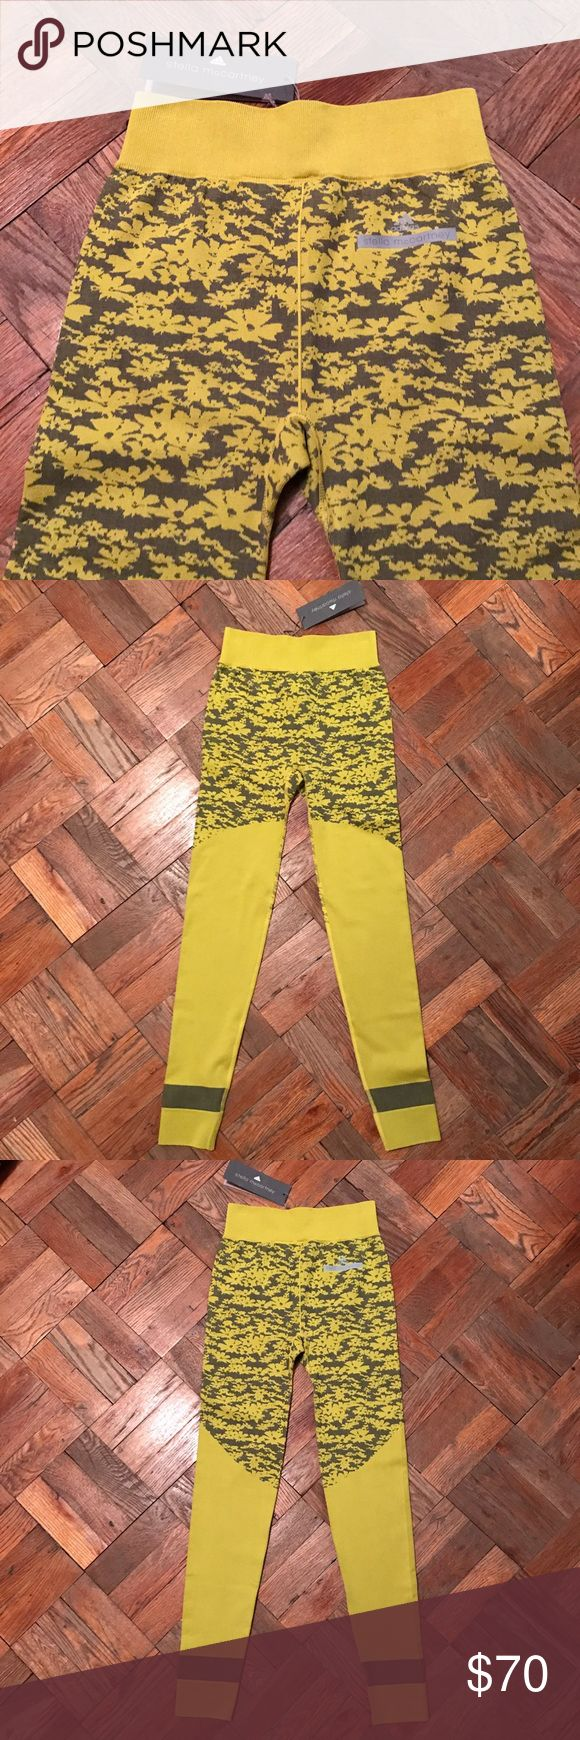 Adidas by Stella McCartney leggings, size S Super cute and fun floral print leggings from Stella Maccartney for adidas. Size S, new with tags! Colors as pictured. Adidas by Stella McCartney Pants Leggings